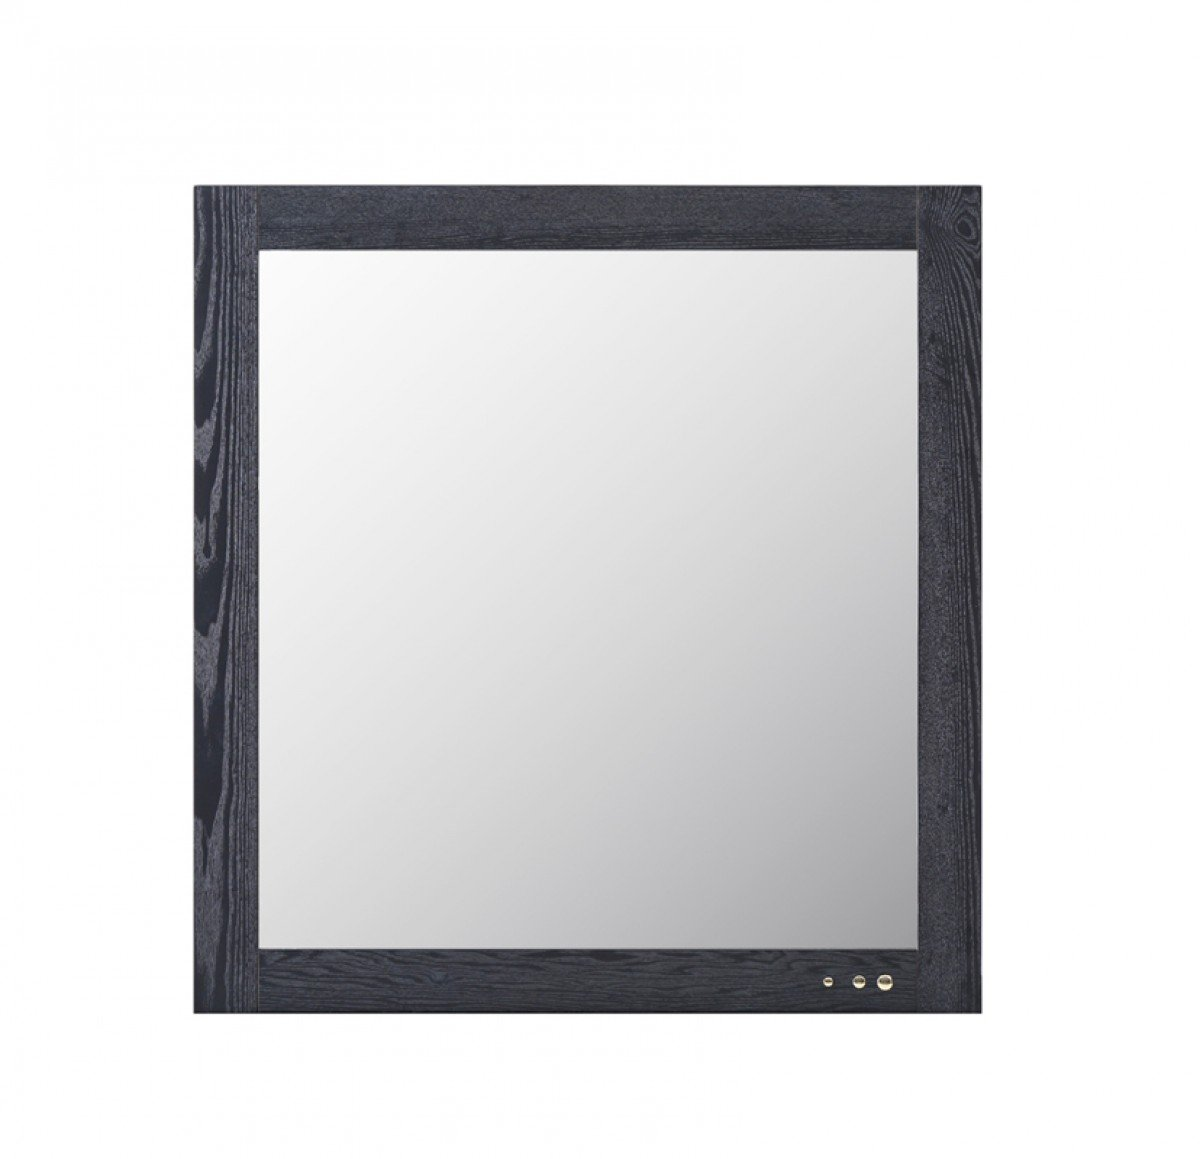 VIG Furniture Modrest Wales Collection Modern Smoked Ash Veneer Finished Mirror with Brass Accents, Dark Grey